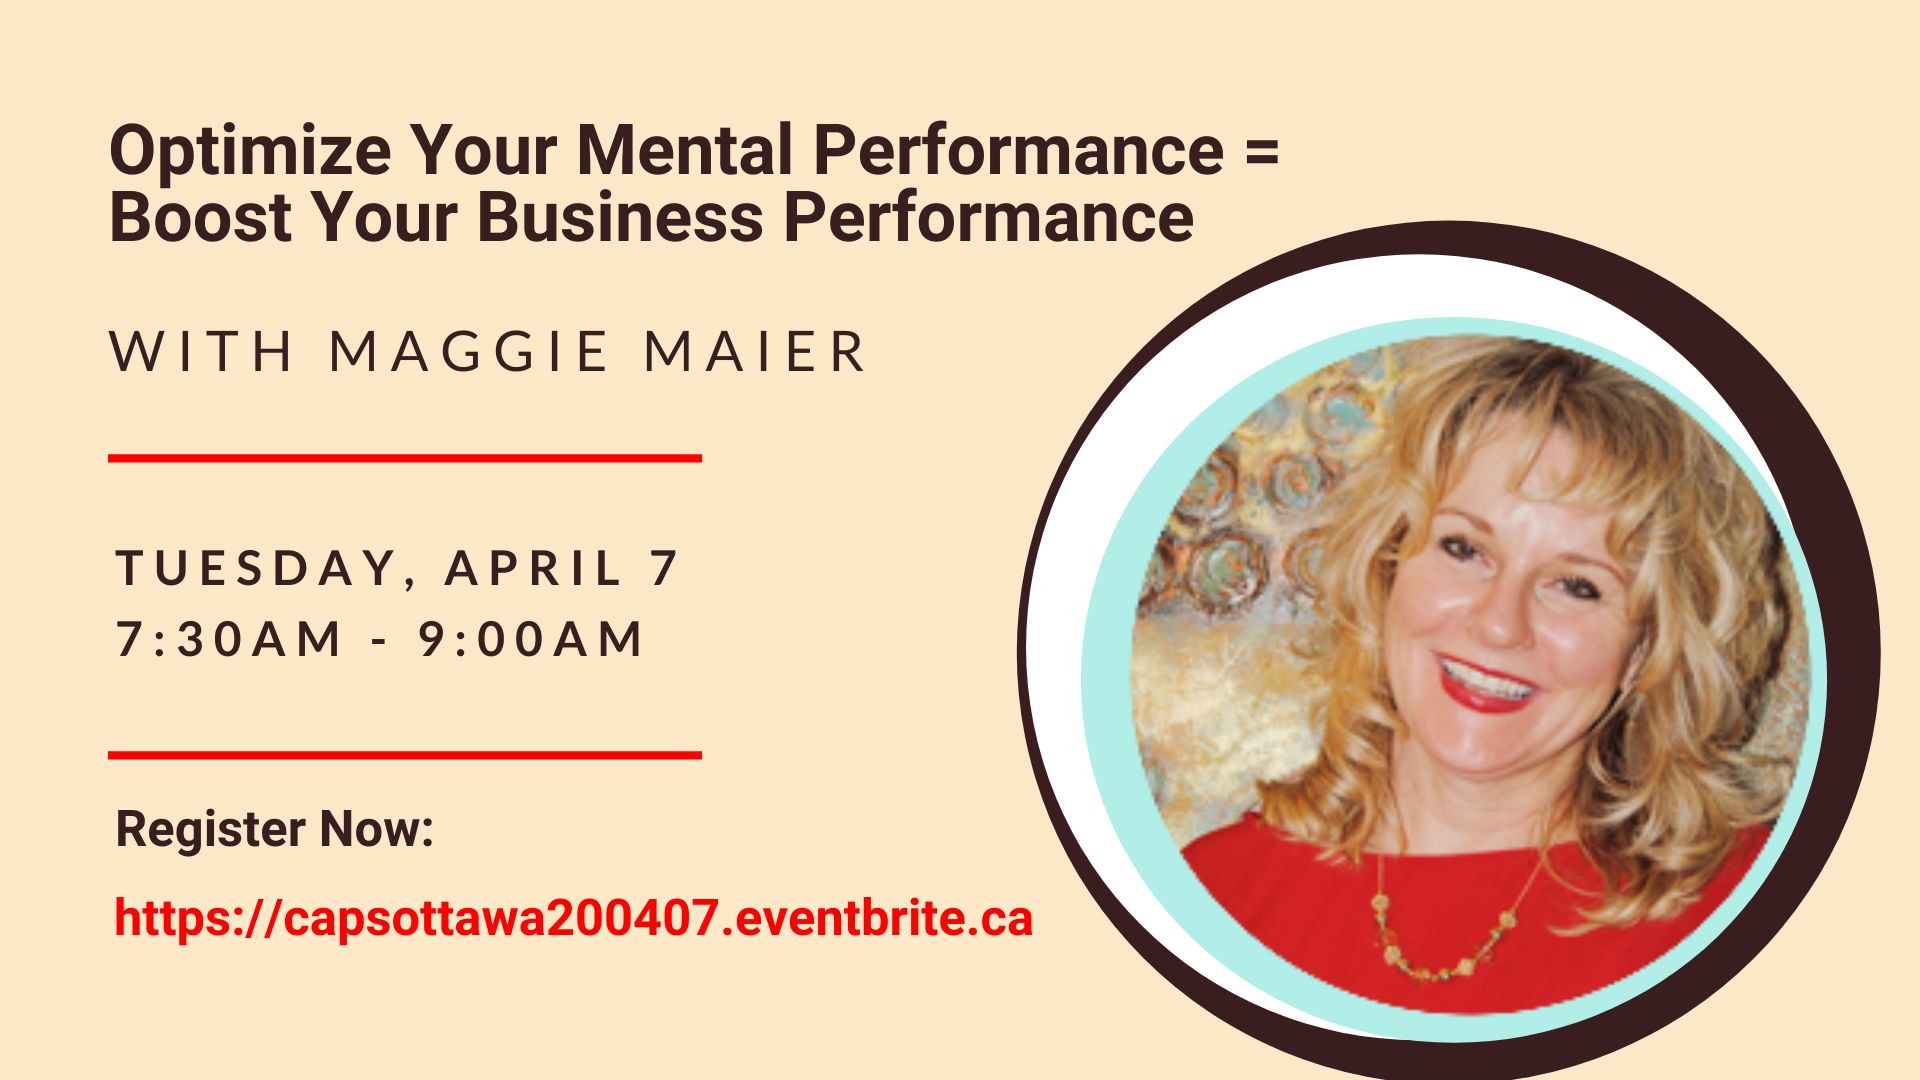 Optimize Your Mental Performance = Boost Your Business Performance with Maggie Maier